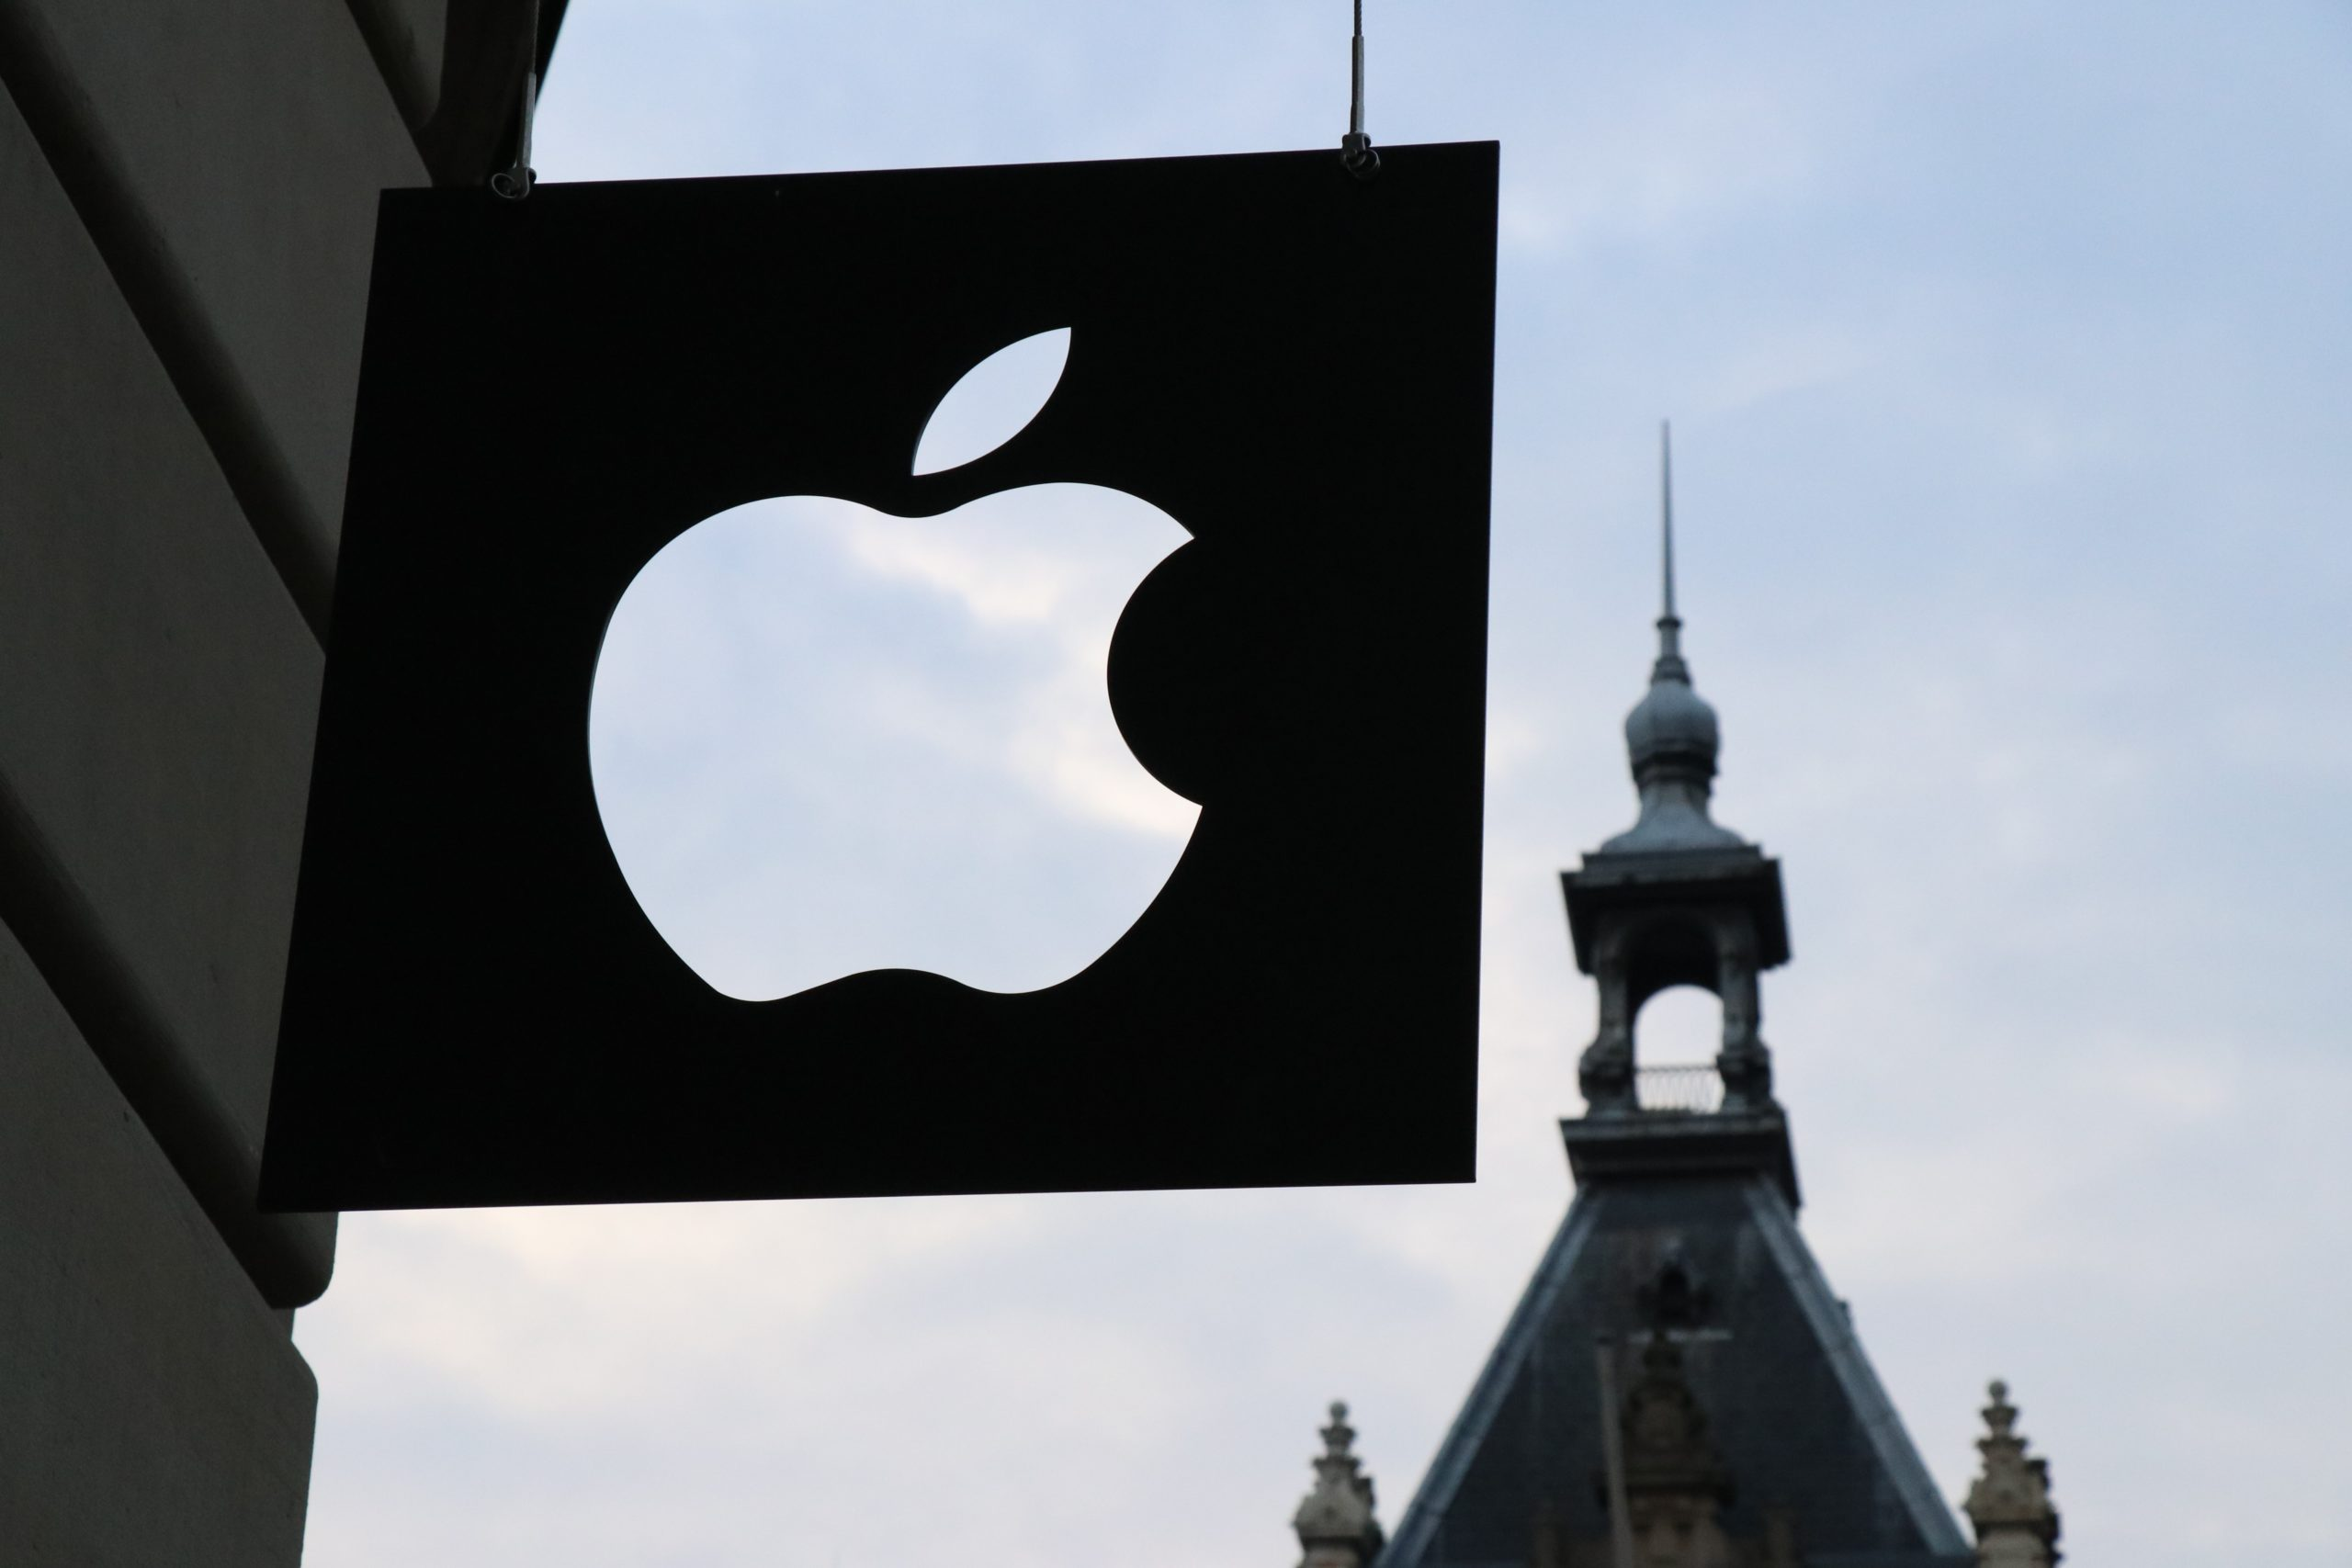 Apple logo in front of a building